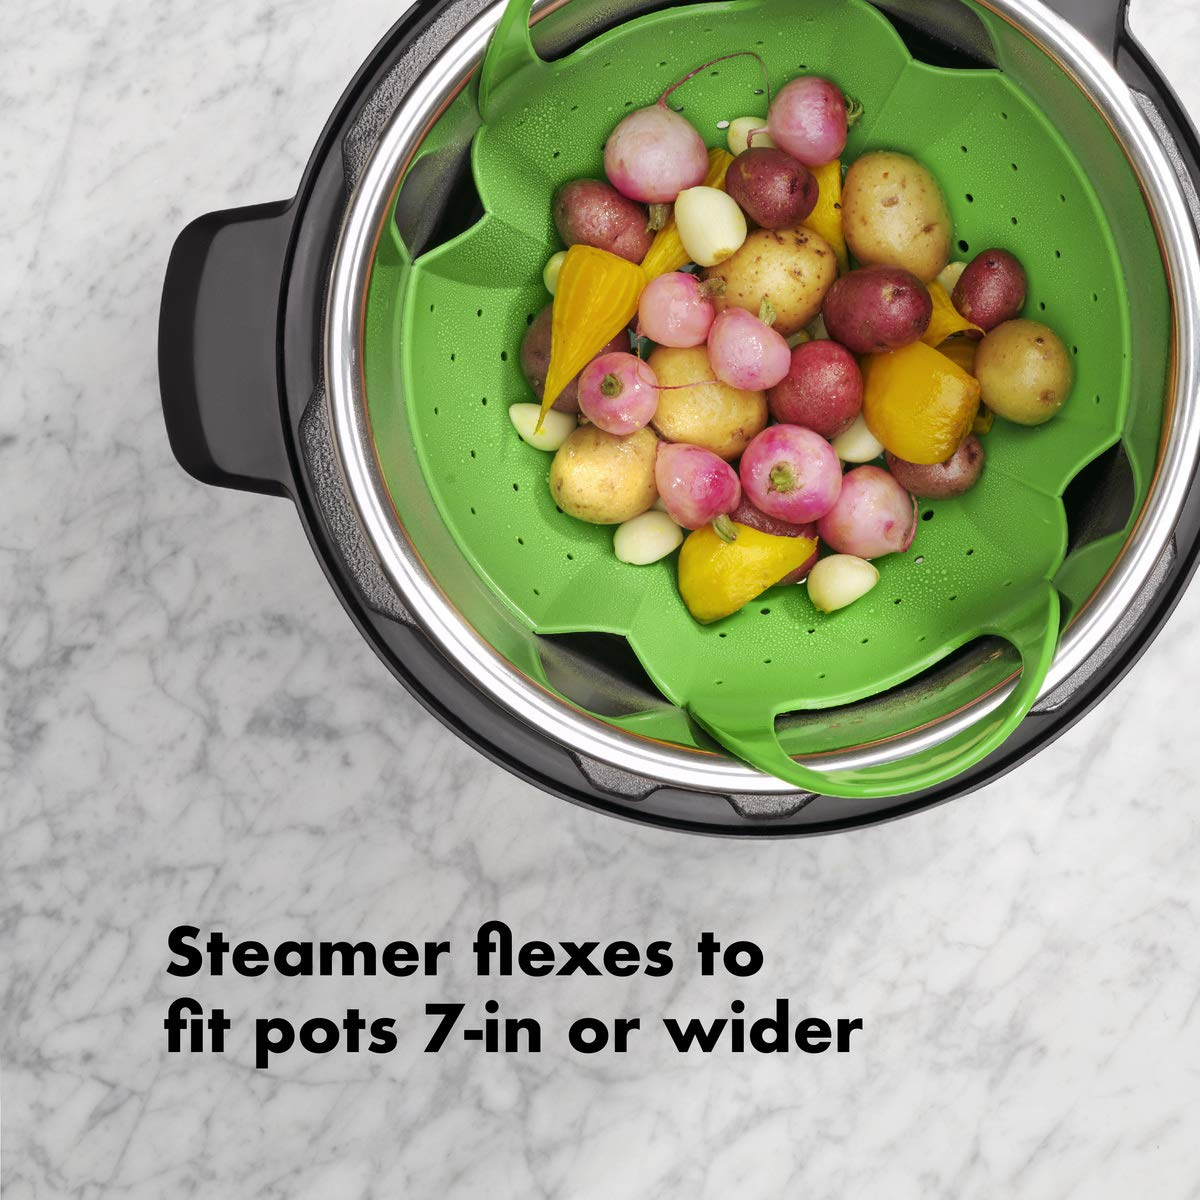 OXO Good Grips Silicone Steamer, Green by OXO (Image #2)